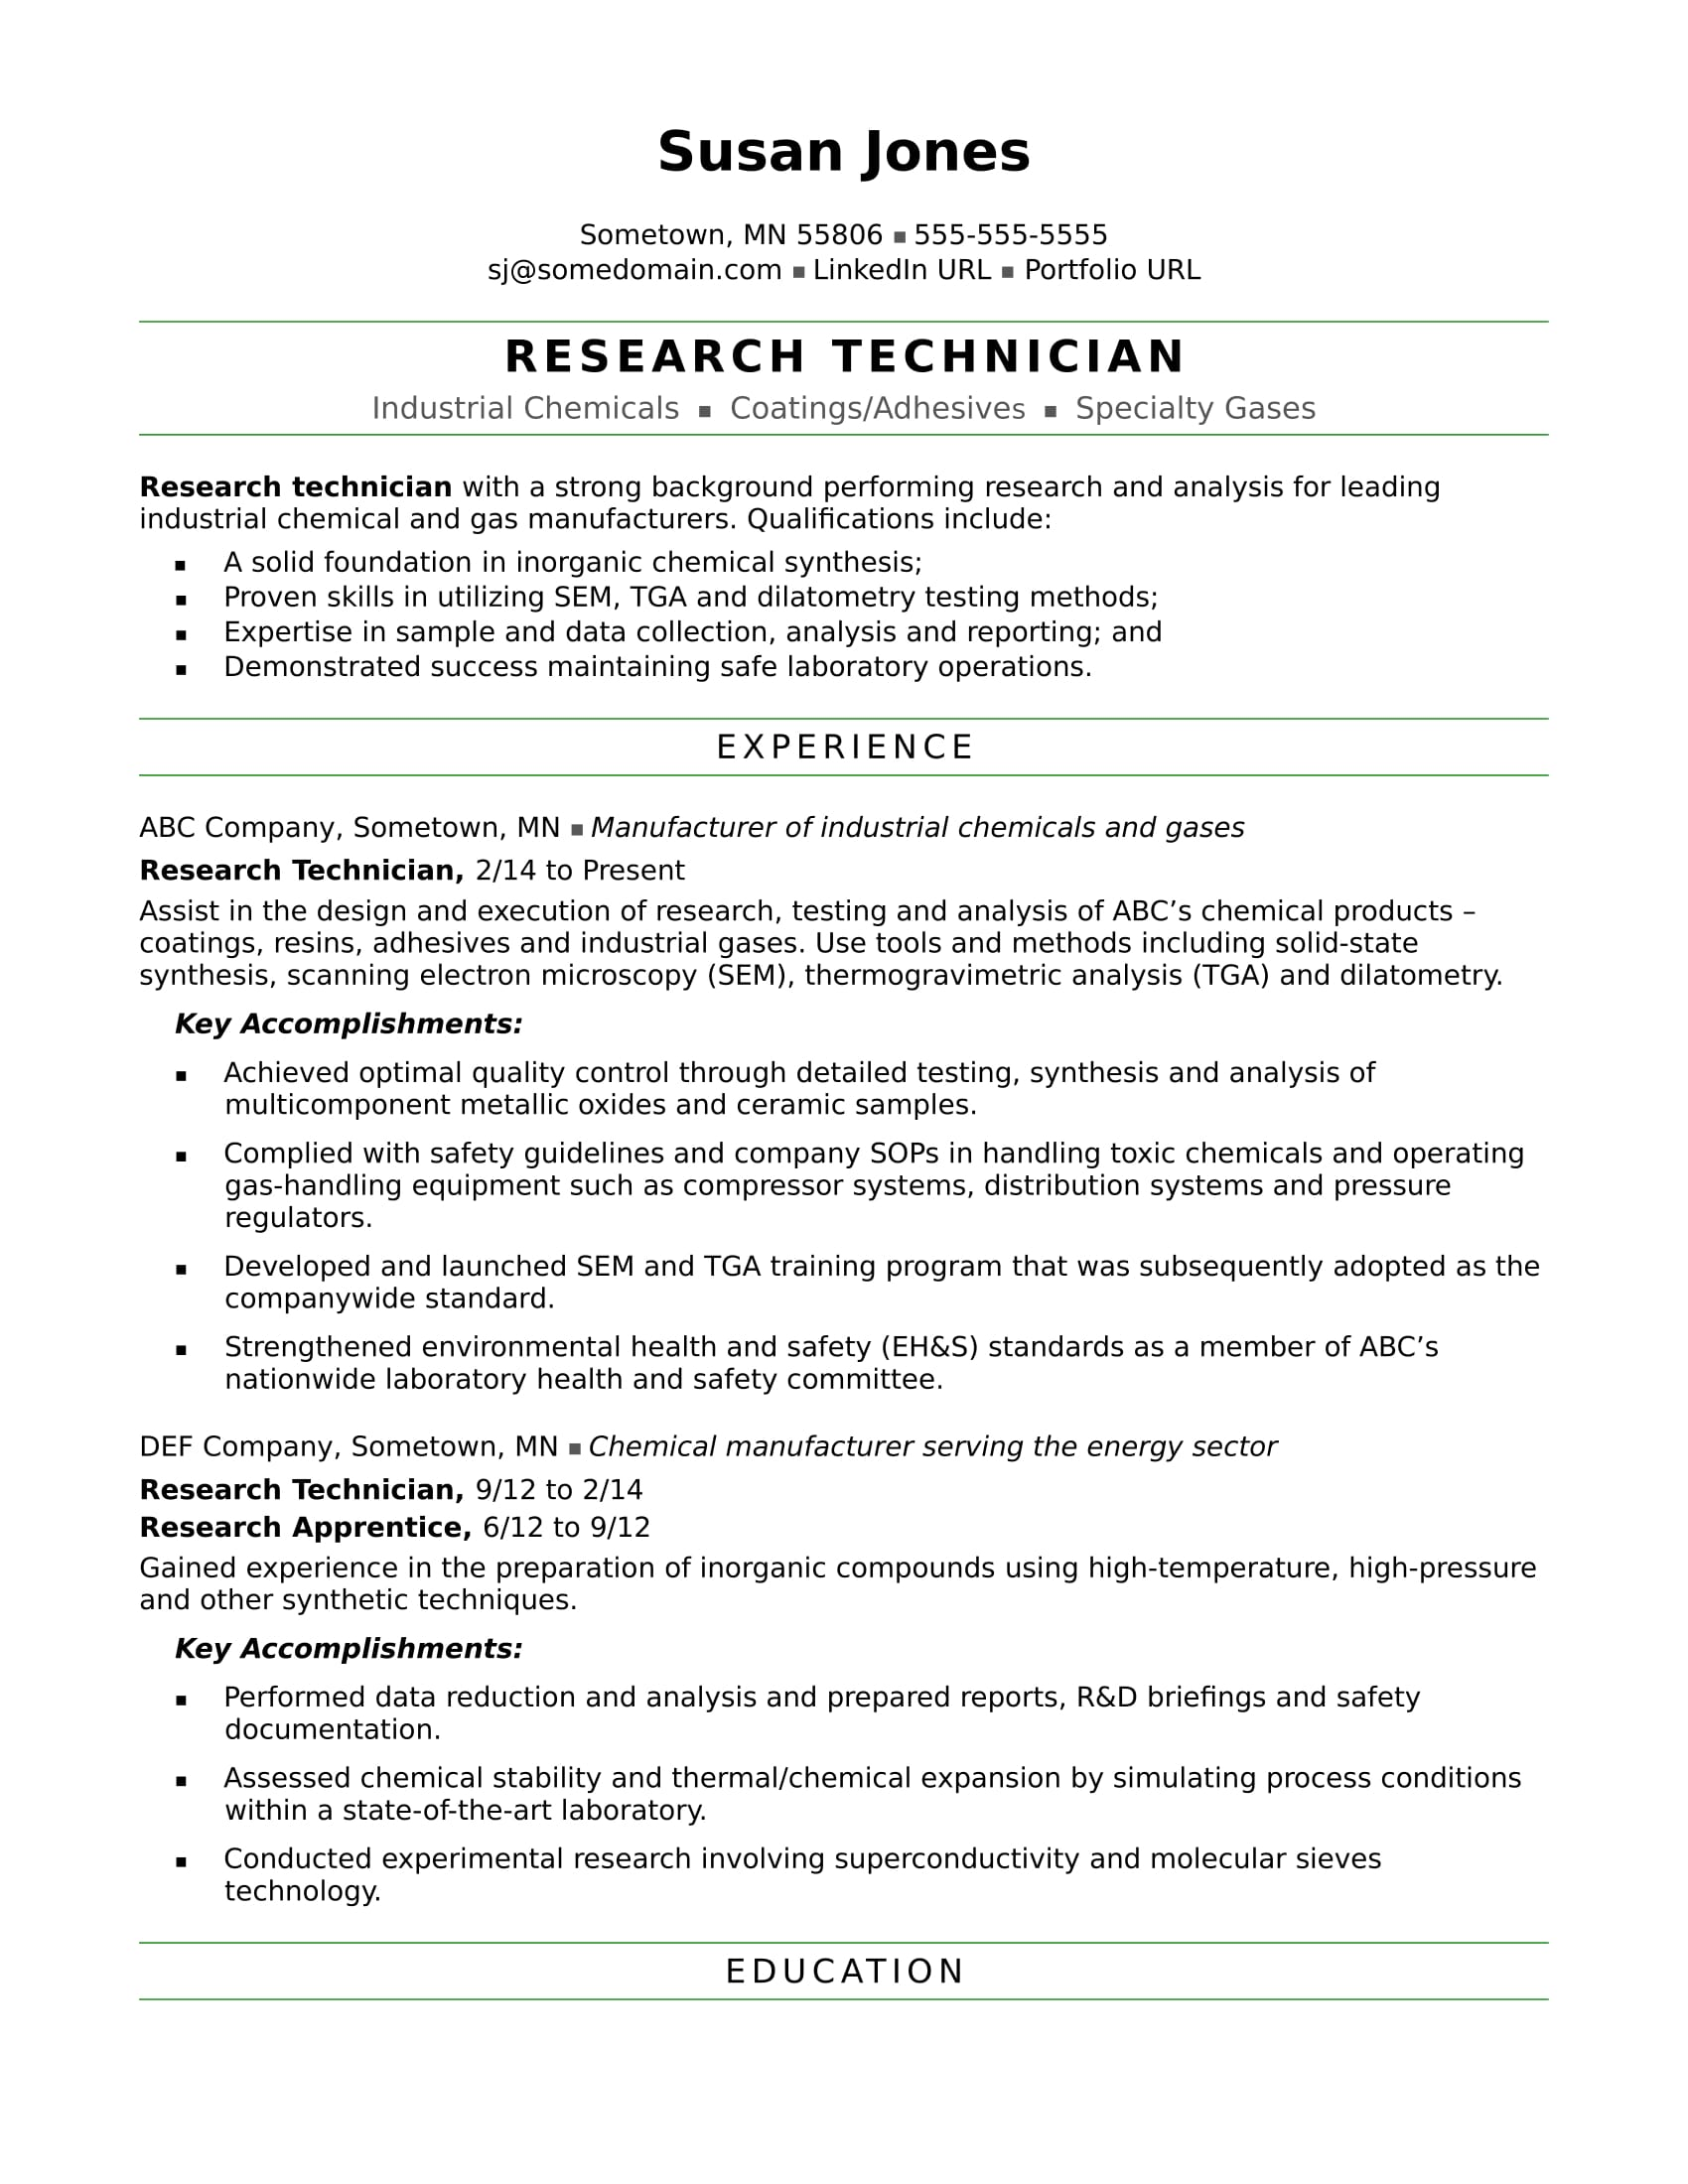 Research Technician Resume Sample  MonsterCom